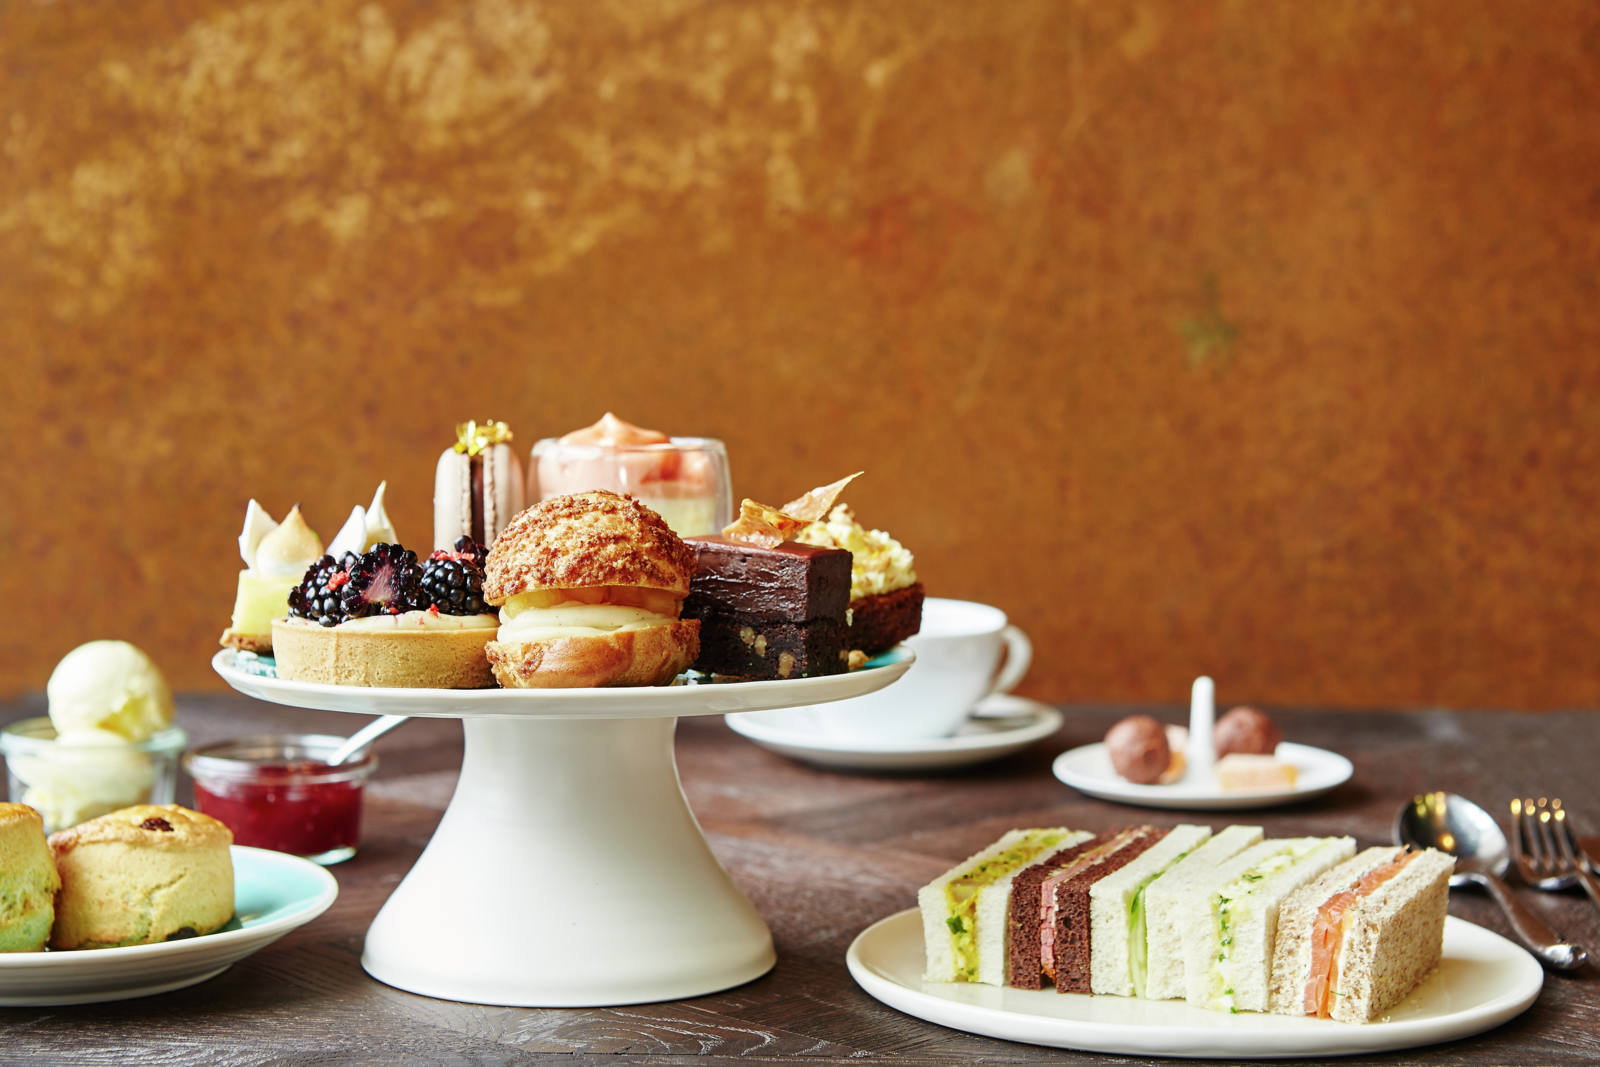 Afternoon tea at Barbecoa restaurant